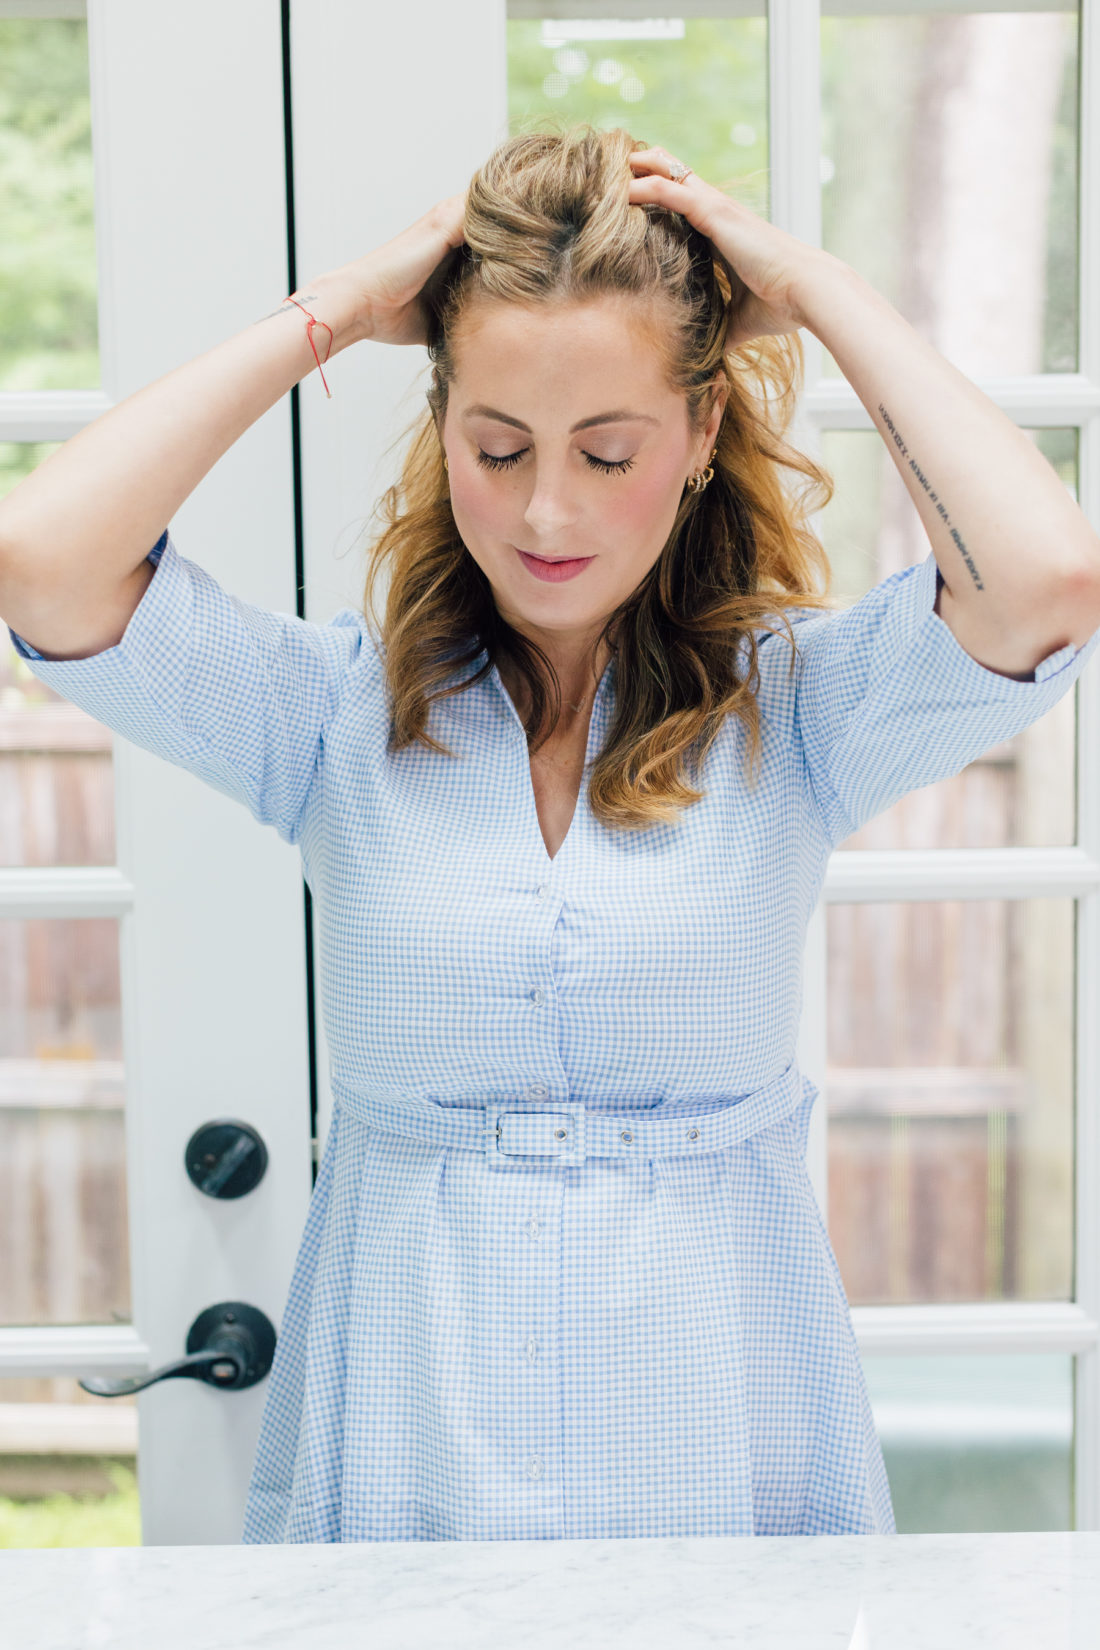 Eva Amurri Martino shares her favorite scalp oil from Furterer Complexe 5